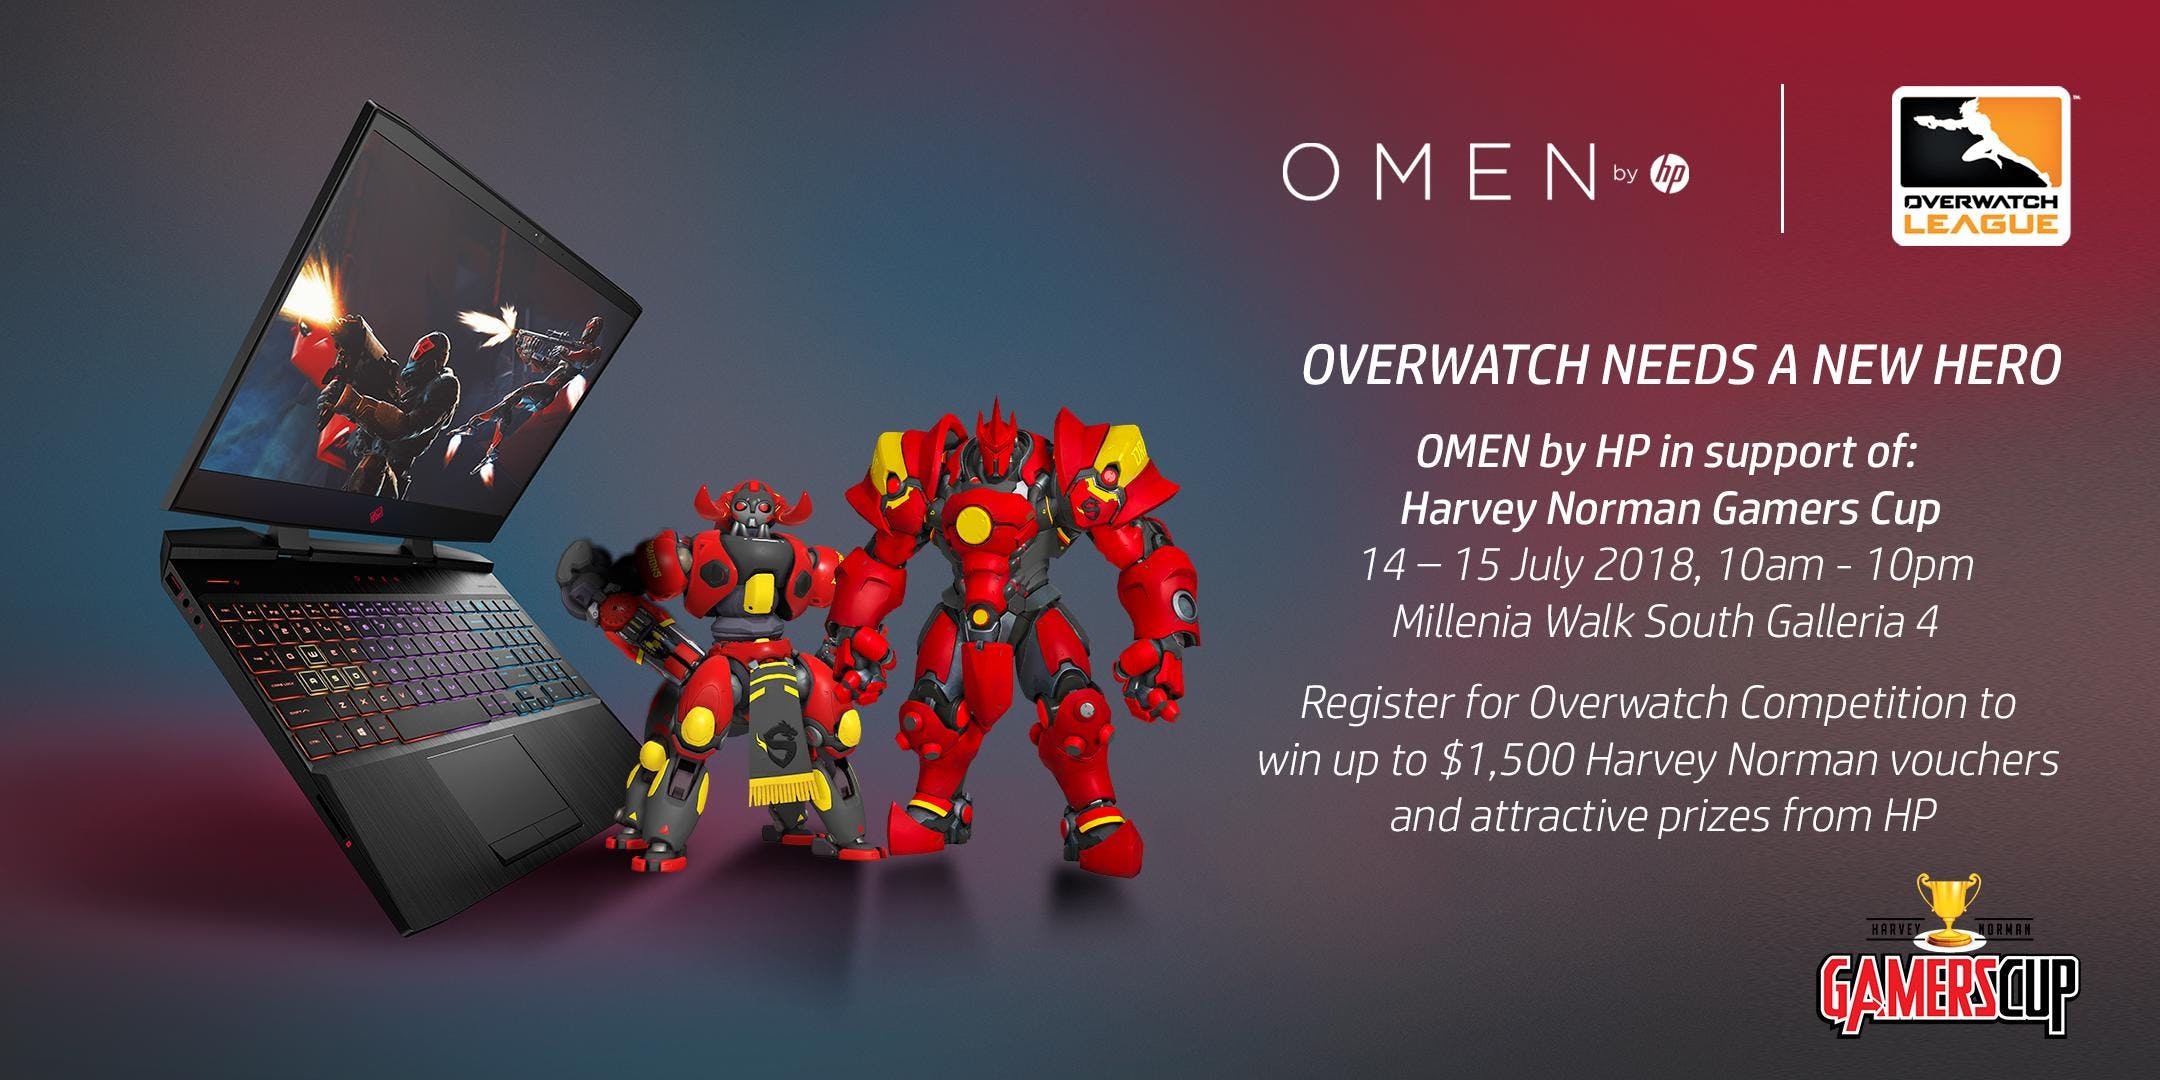 OMEN by HP in support of Harvey Norman Gamers Cup